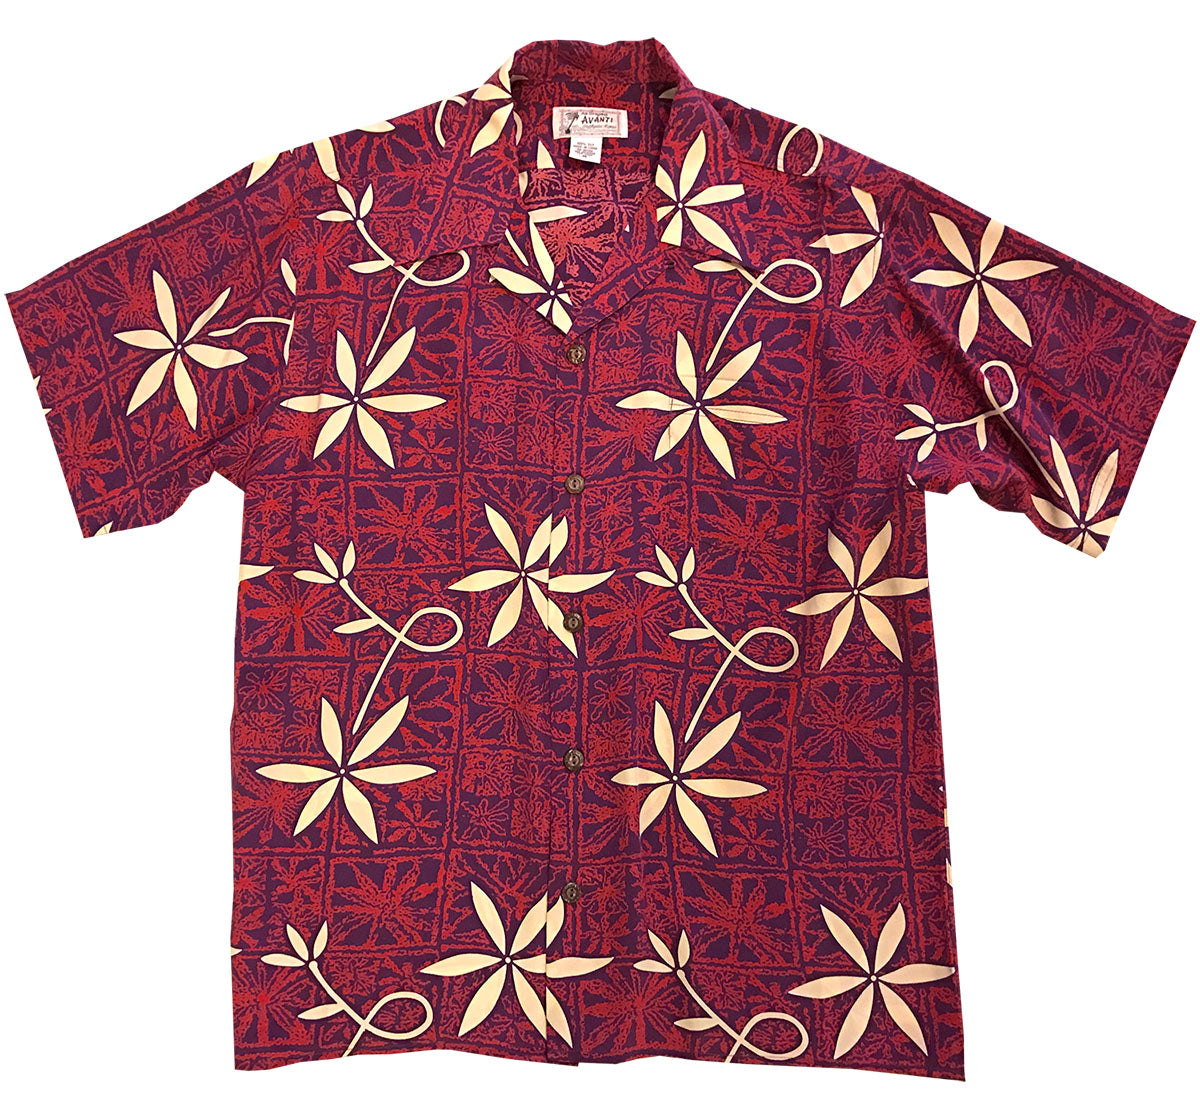 46351e449 Blue Hawaii Retro Hawaiian Shirt - AlohaFunWear.com